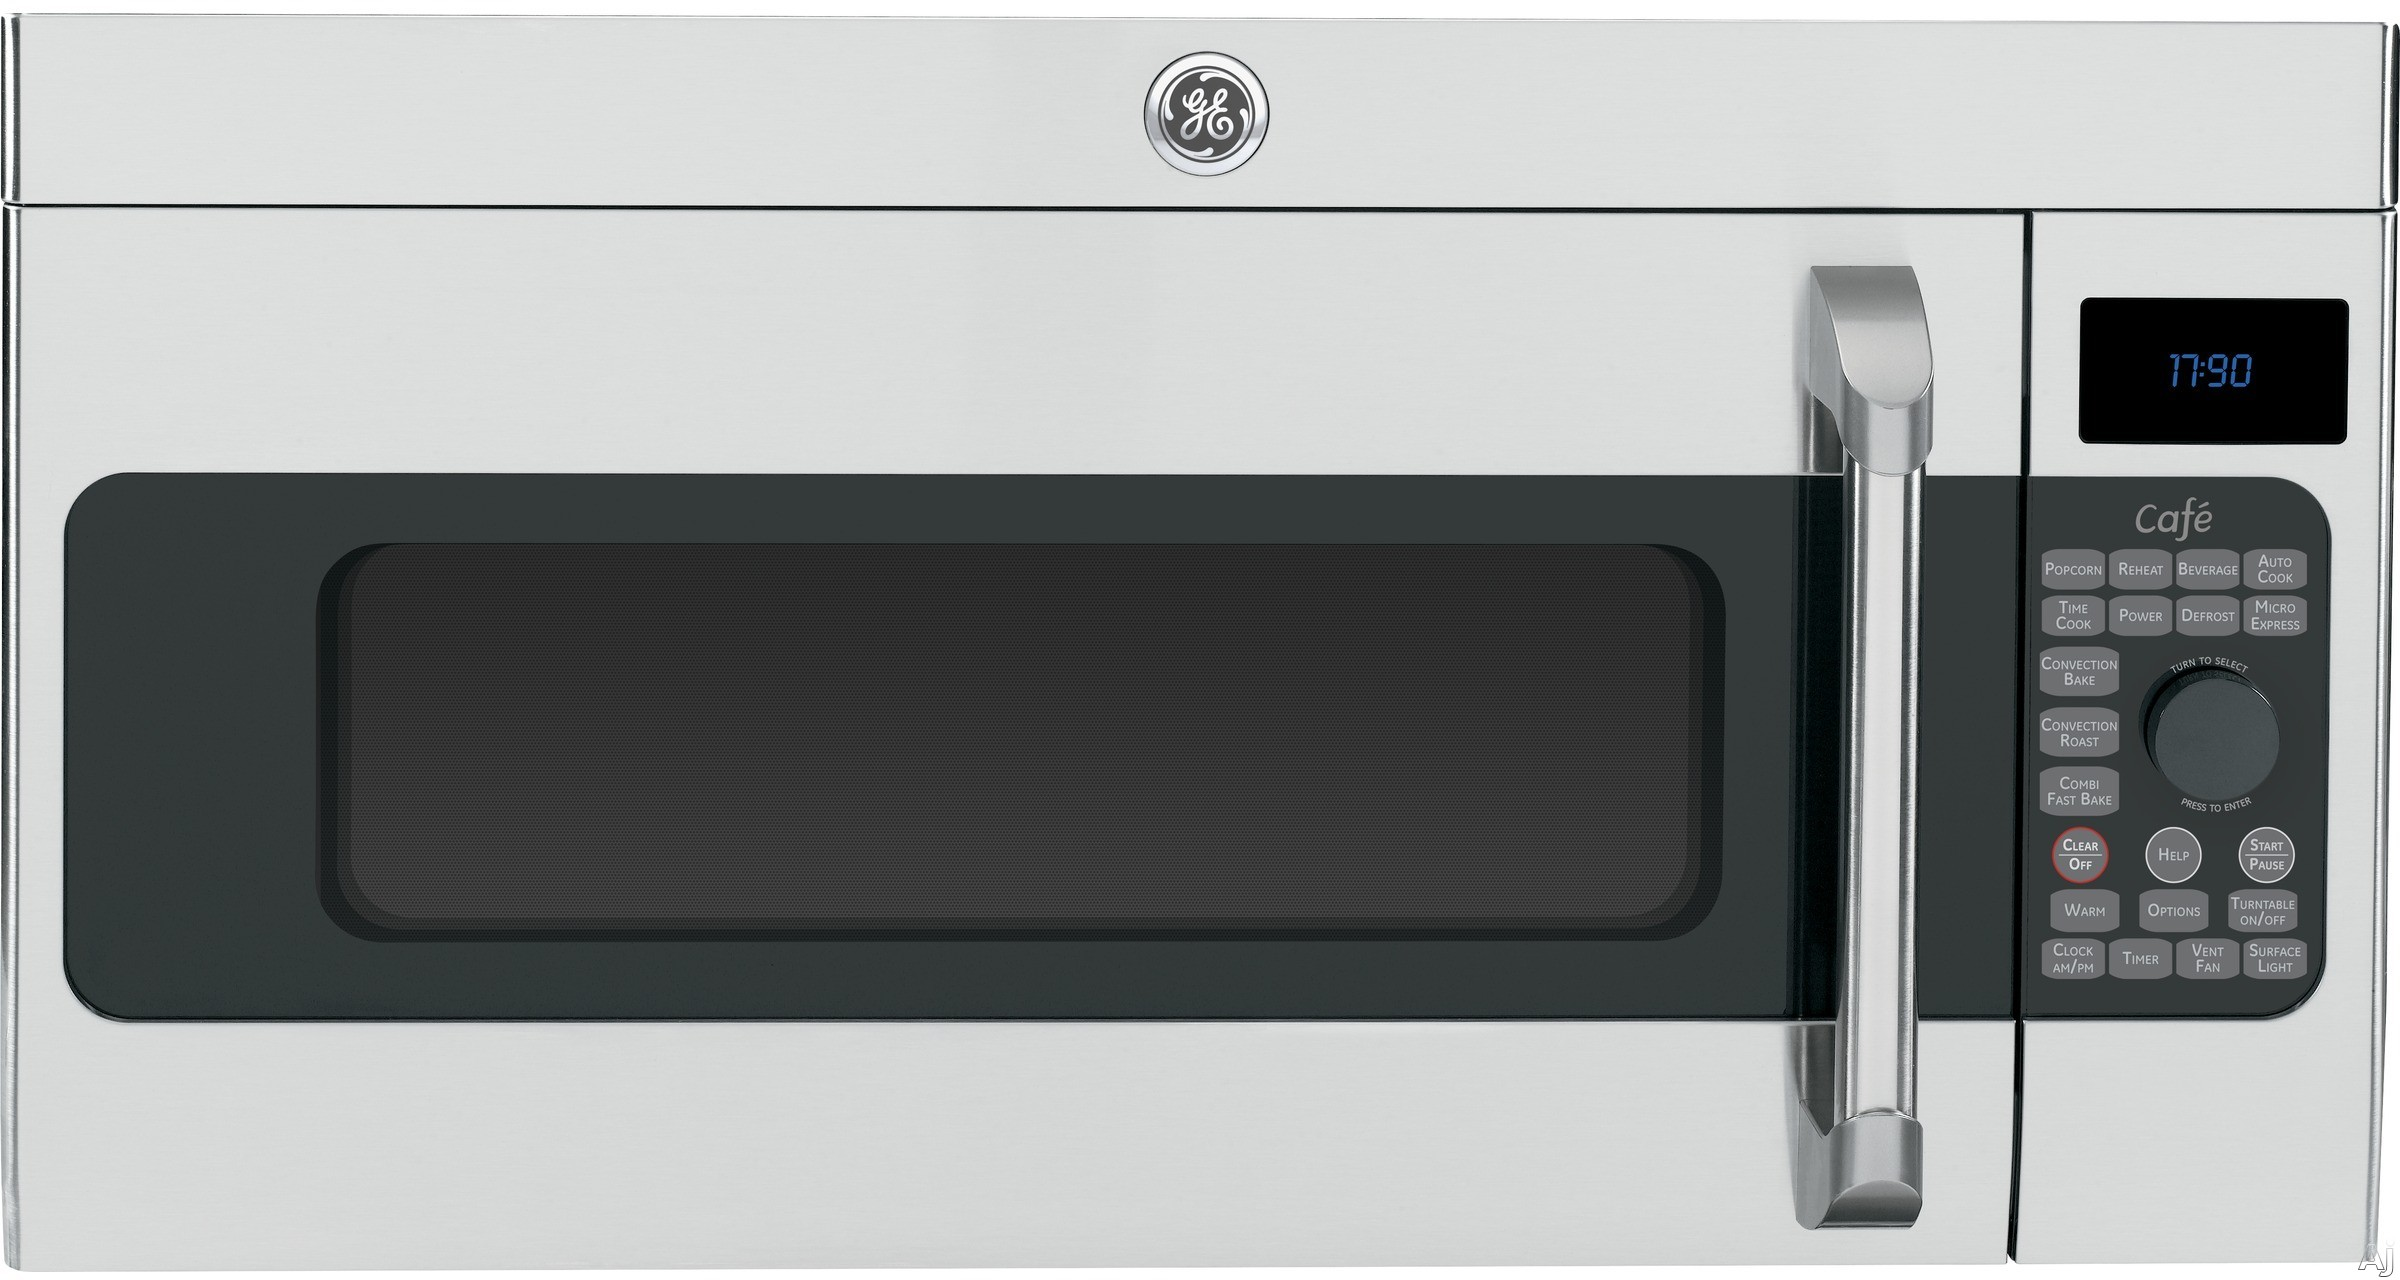 GE Cafe Series CVM1790SSSS 1.7 cu. ft. Over-the-Range Microwave Oven with 1,550 Convection Watts, 300 CFM Vortex Venting System, Fast Bake, Warming Oven, Sensor Cooking and Stainless Steel Interior